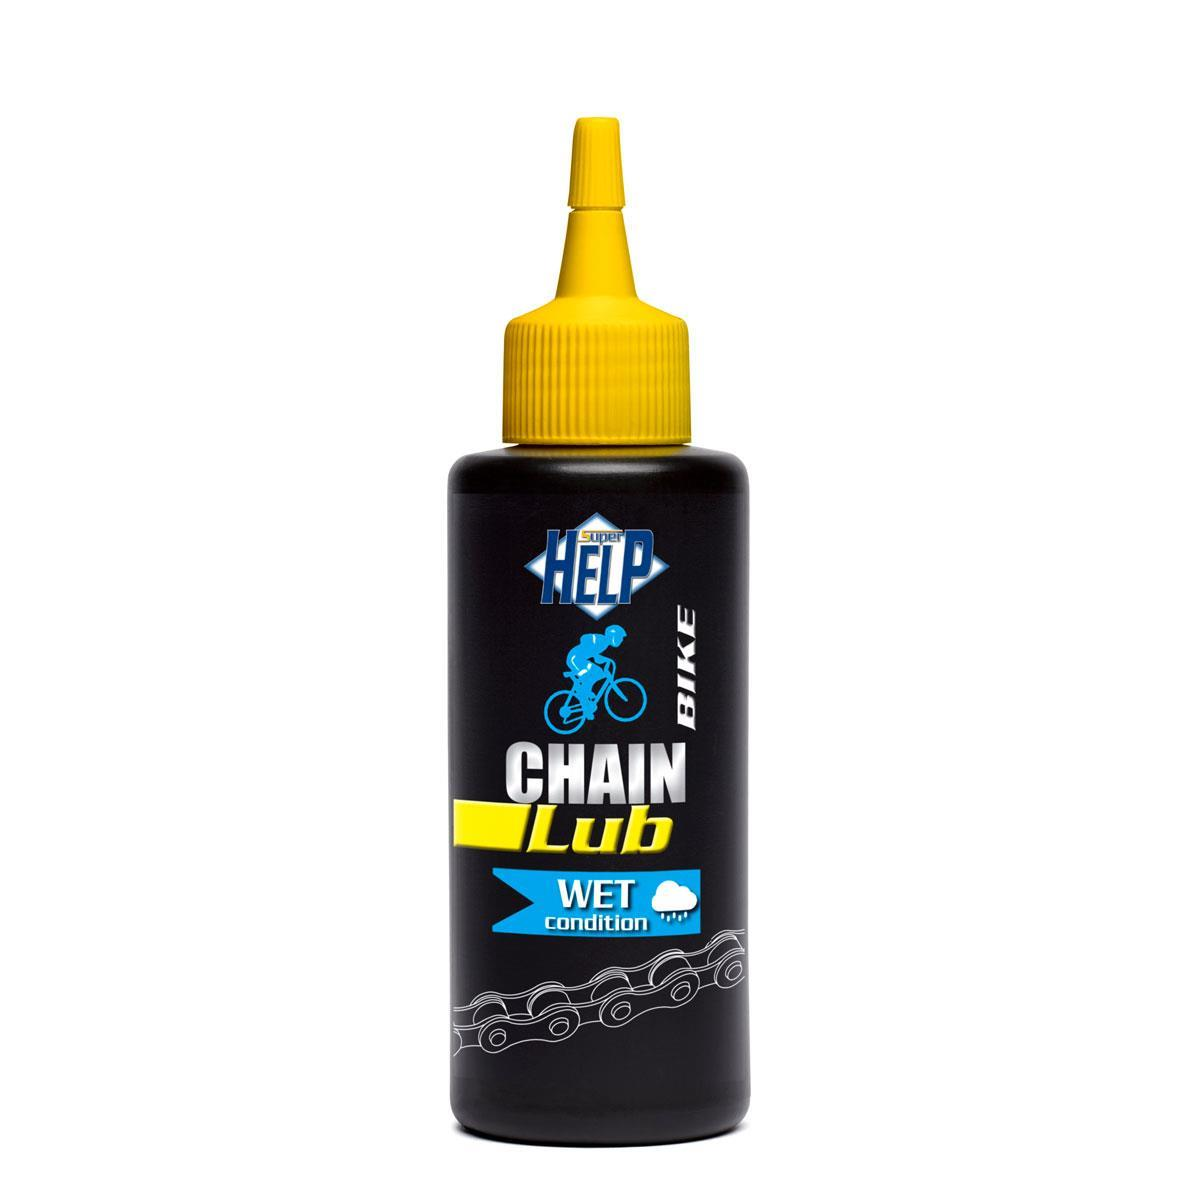 CHAIN LUB WET CONDITION